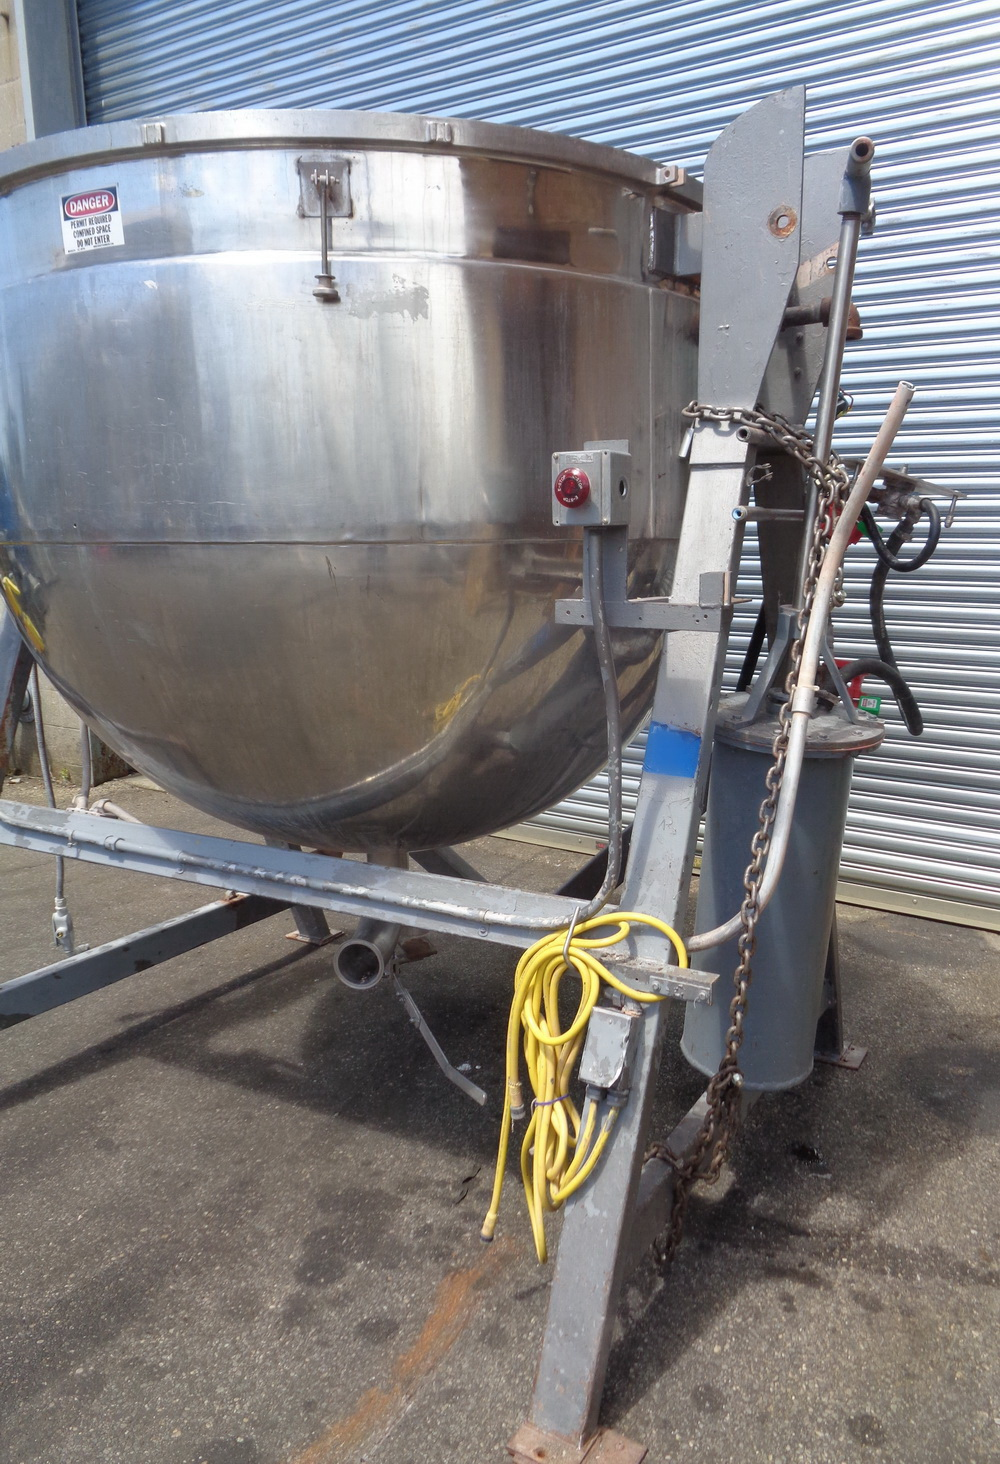 Lee 500 gallon Stainless Steel Double Motion Scraper Jacketed Kettle, Model 500DV9MT - Image 3 of 14